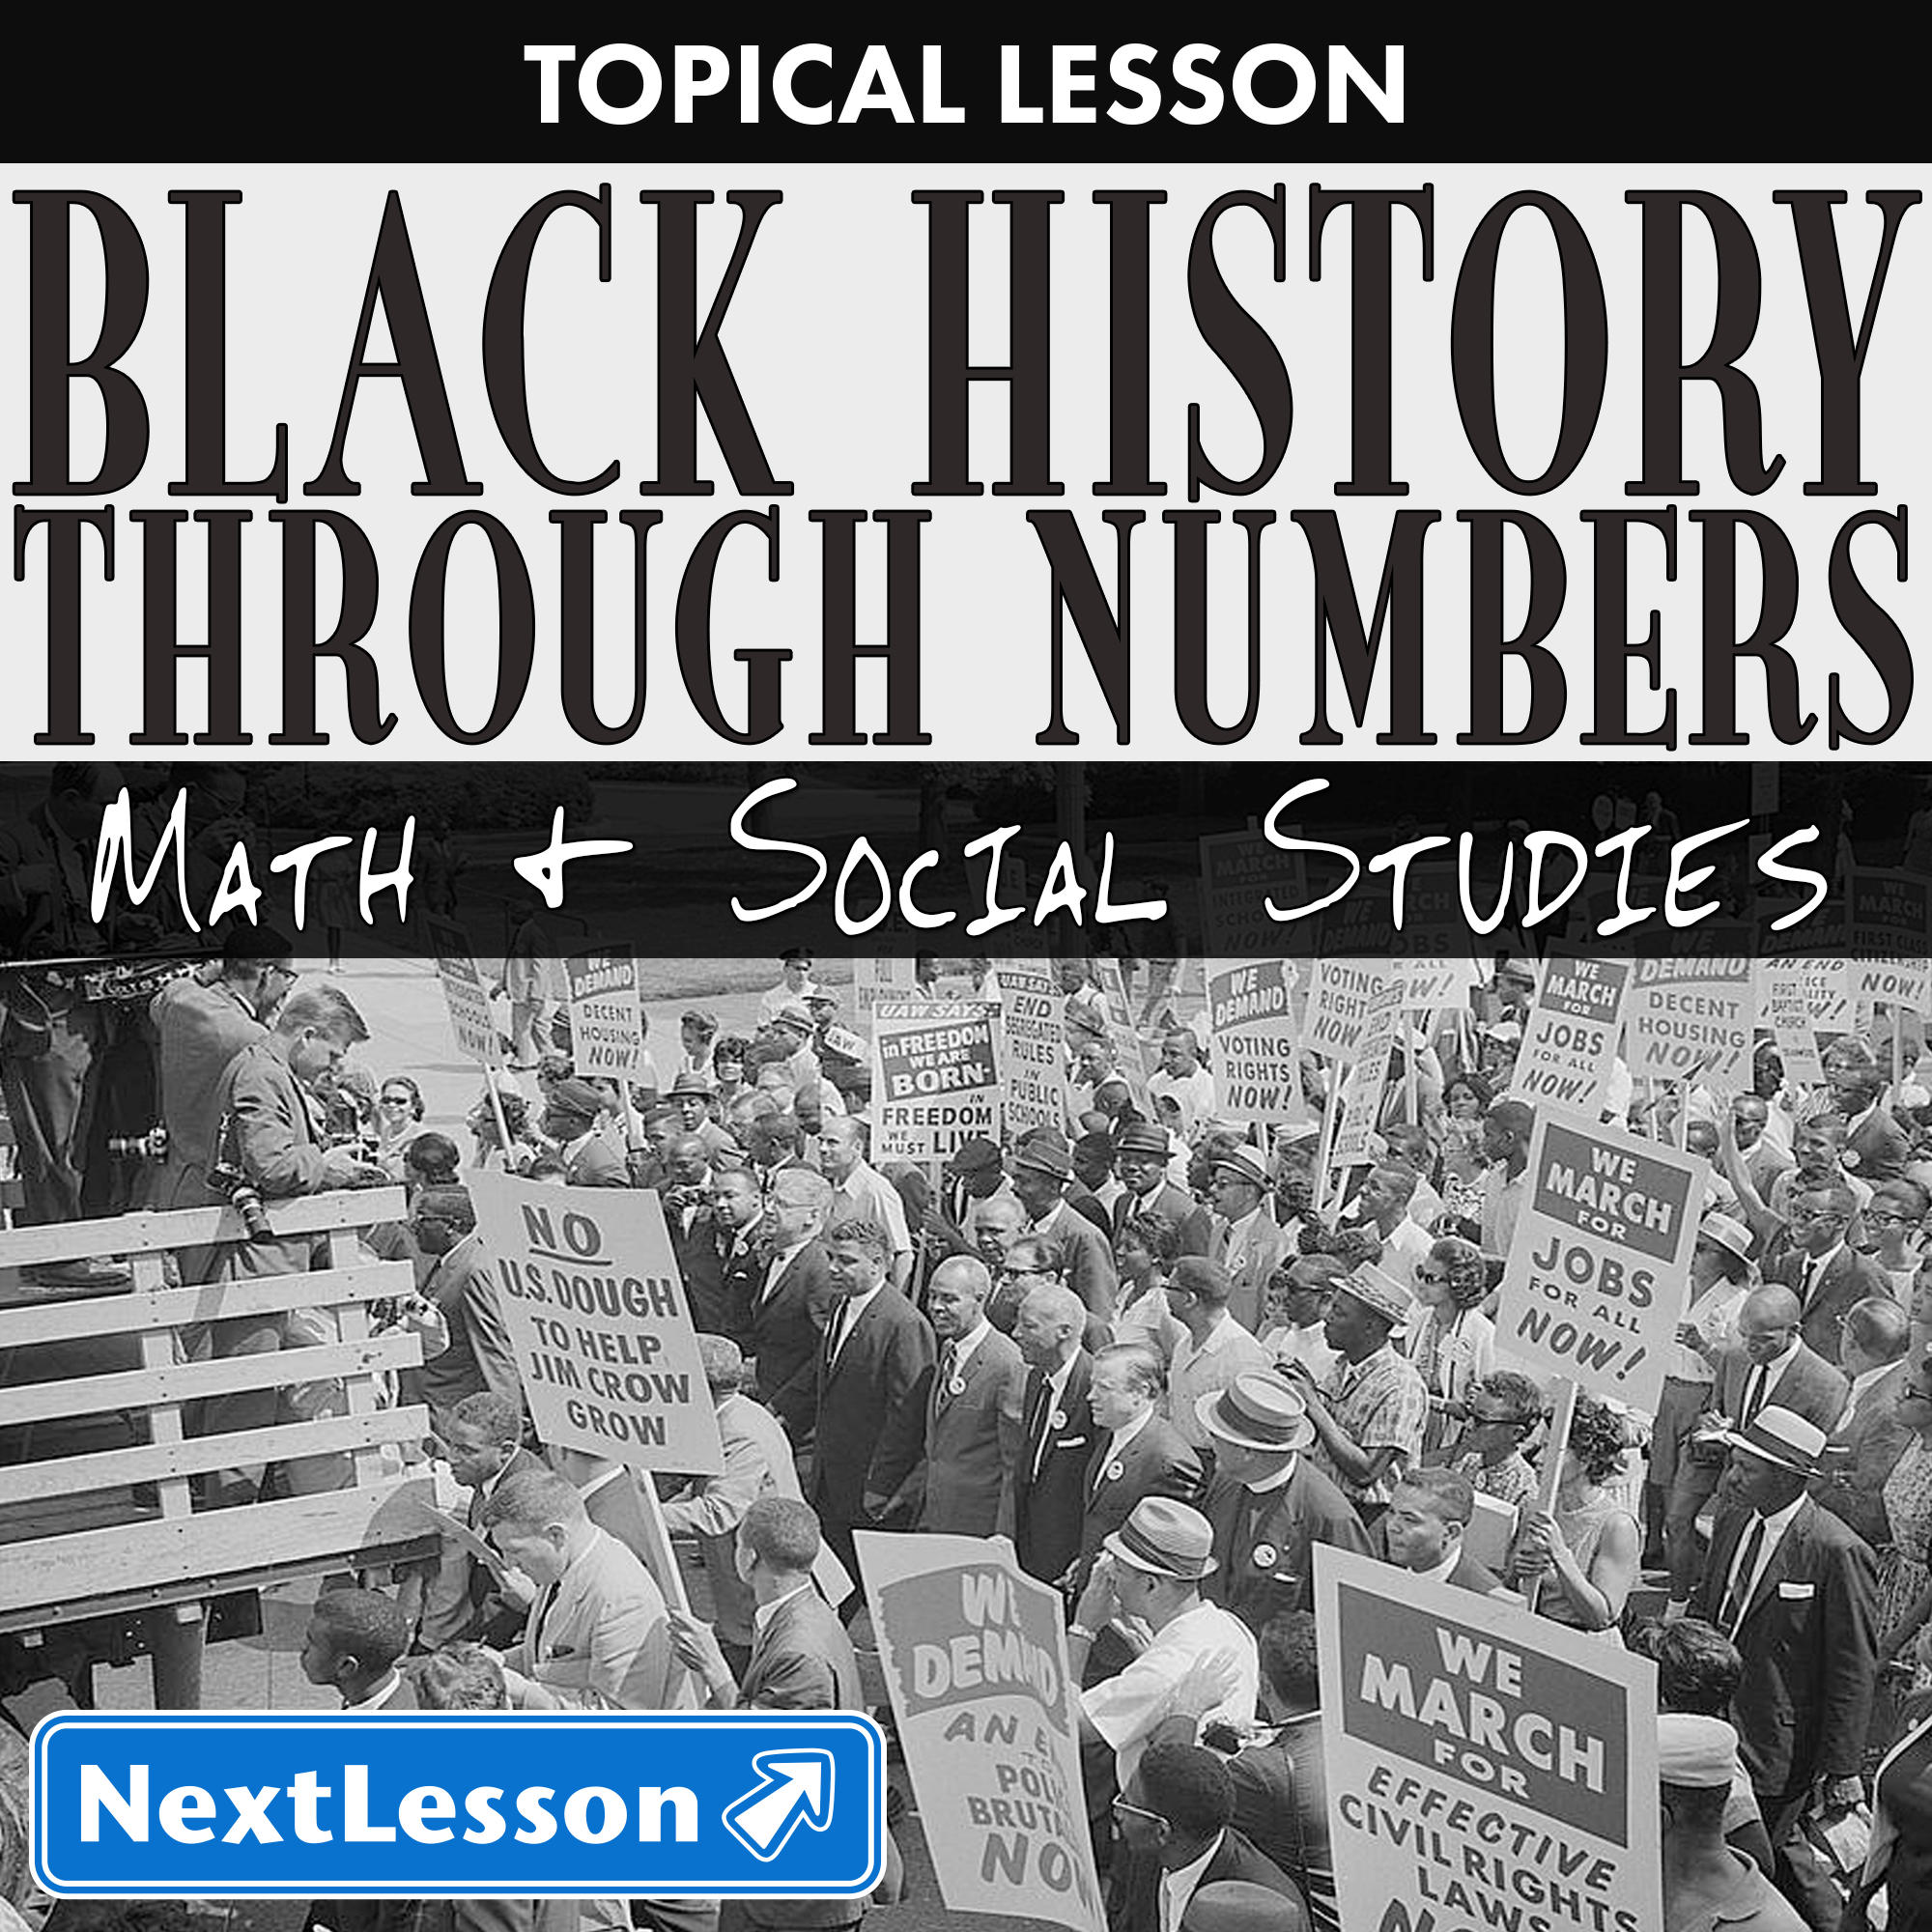 Black History Through Numbers